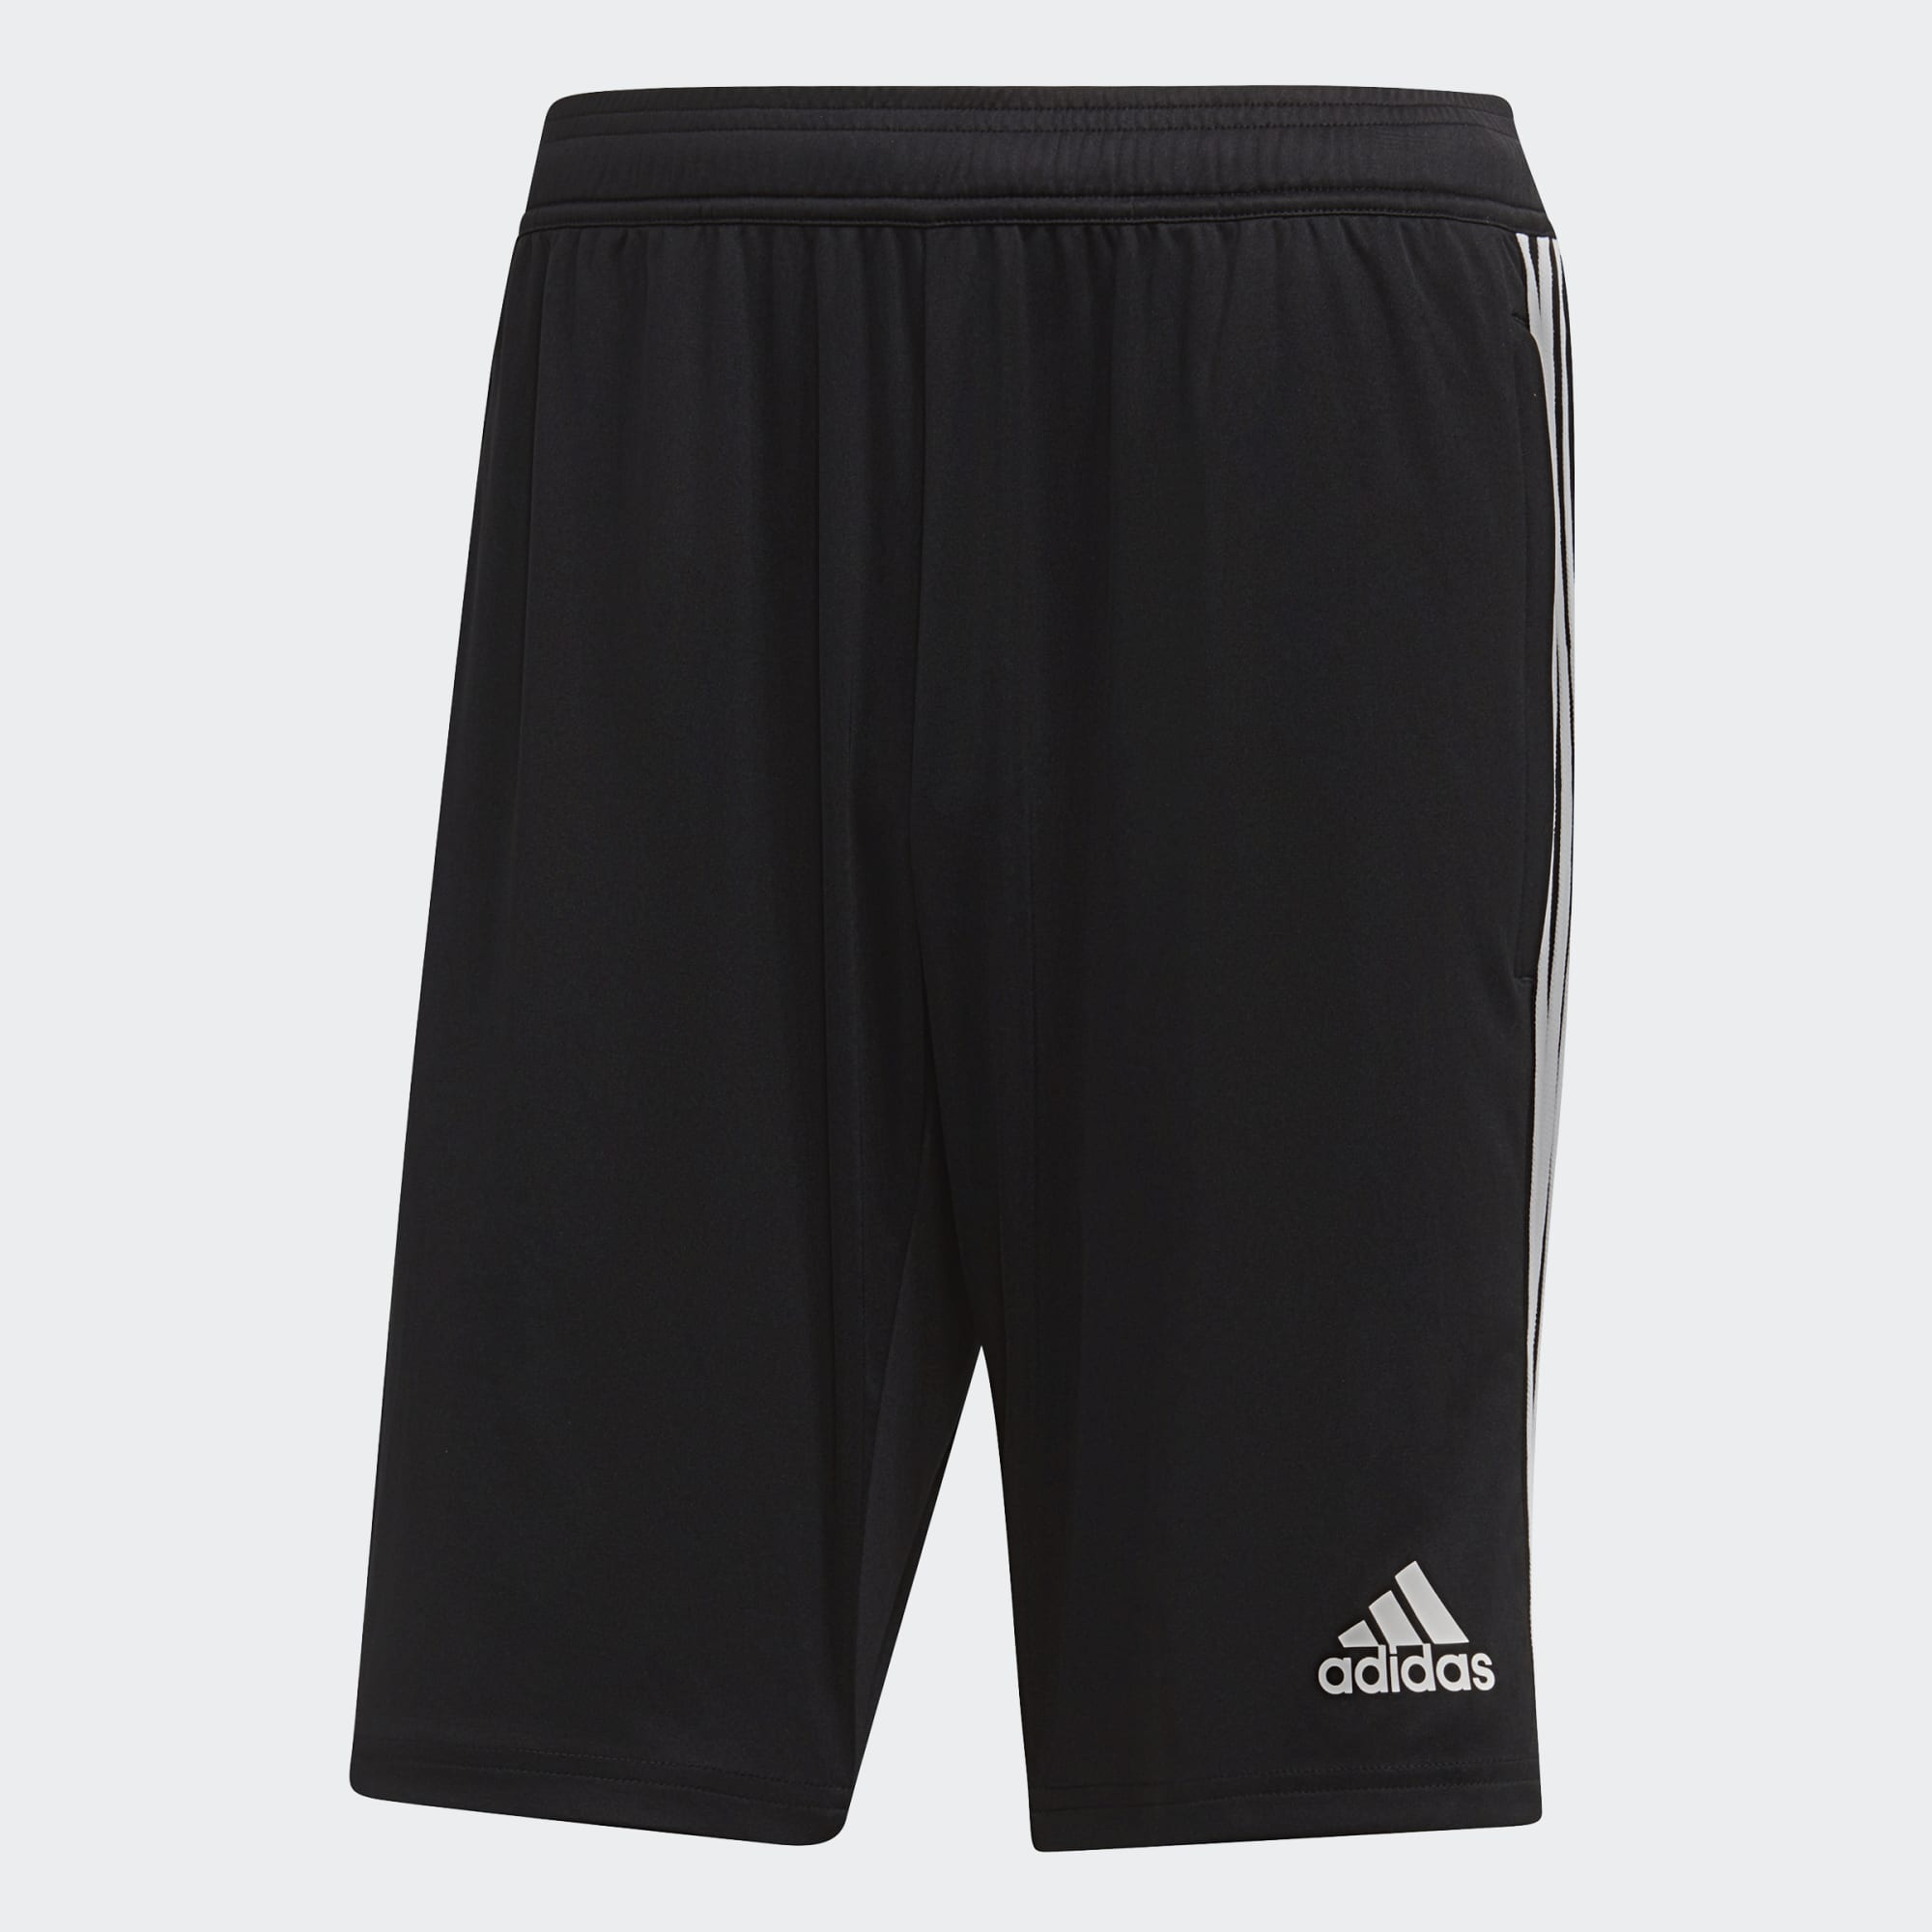 Men's Tiro 19 Training Shorts with Pockets